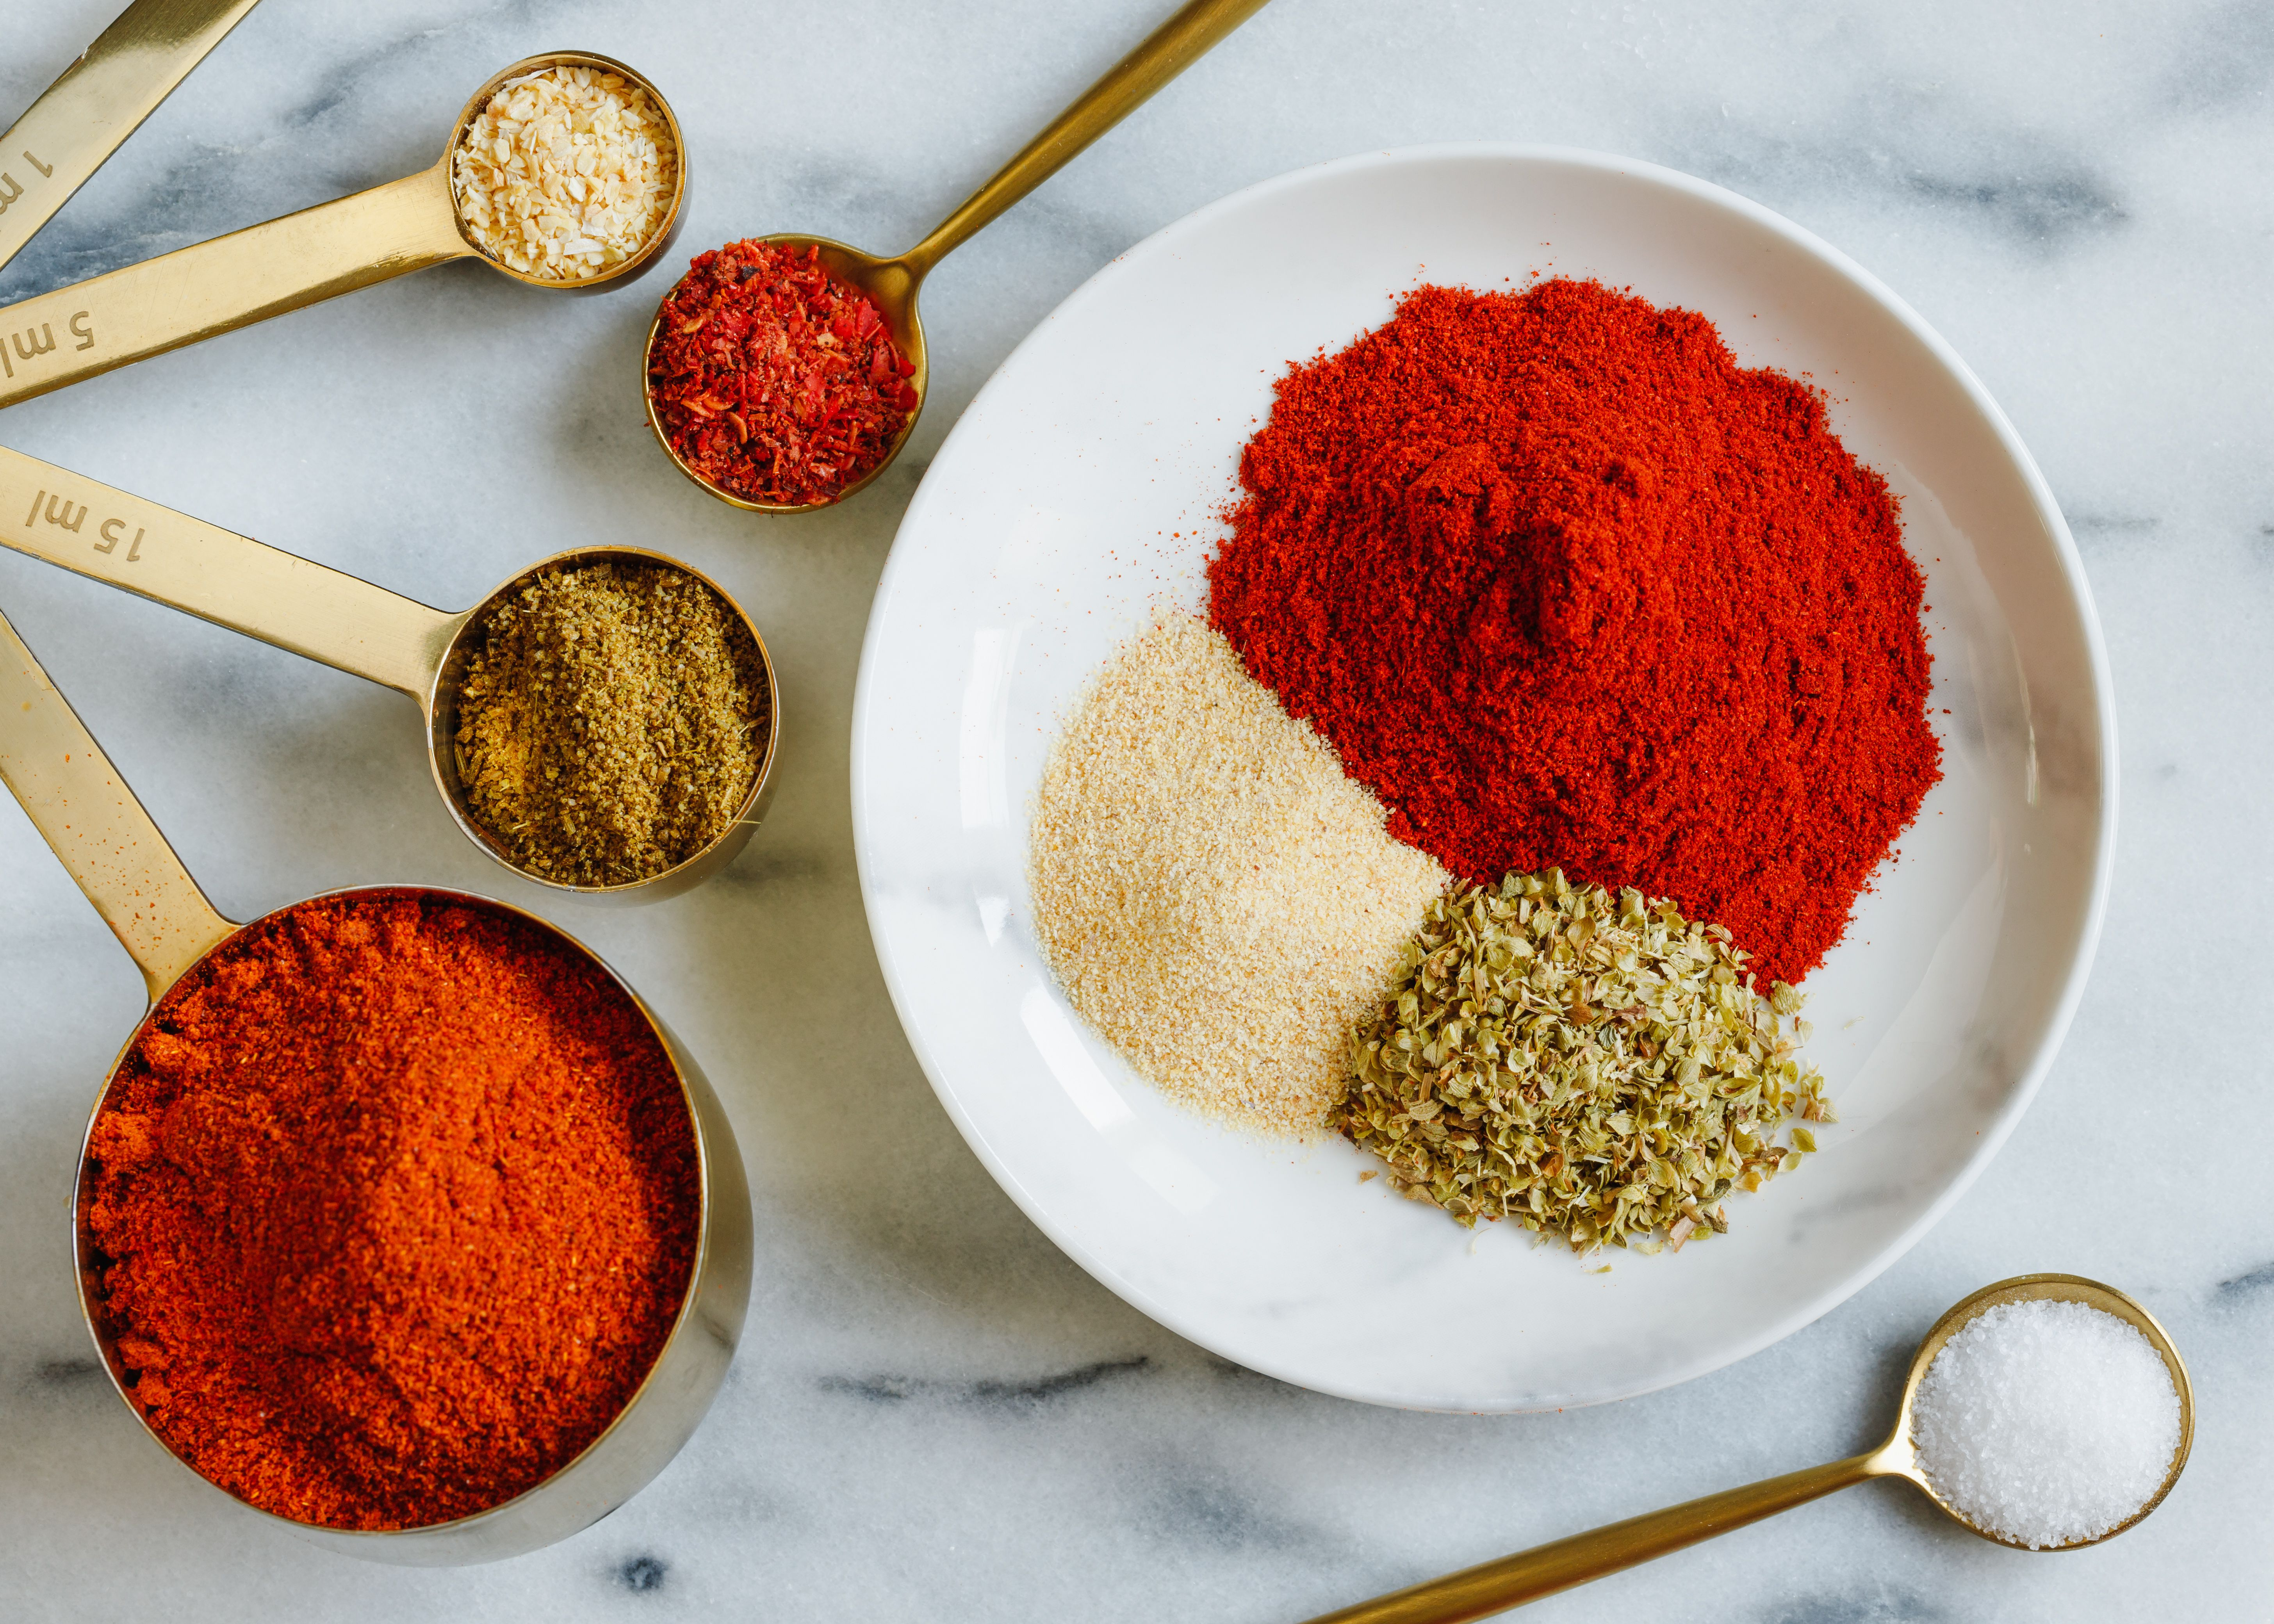 Mexican spice mix ingredients